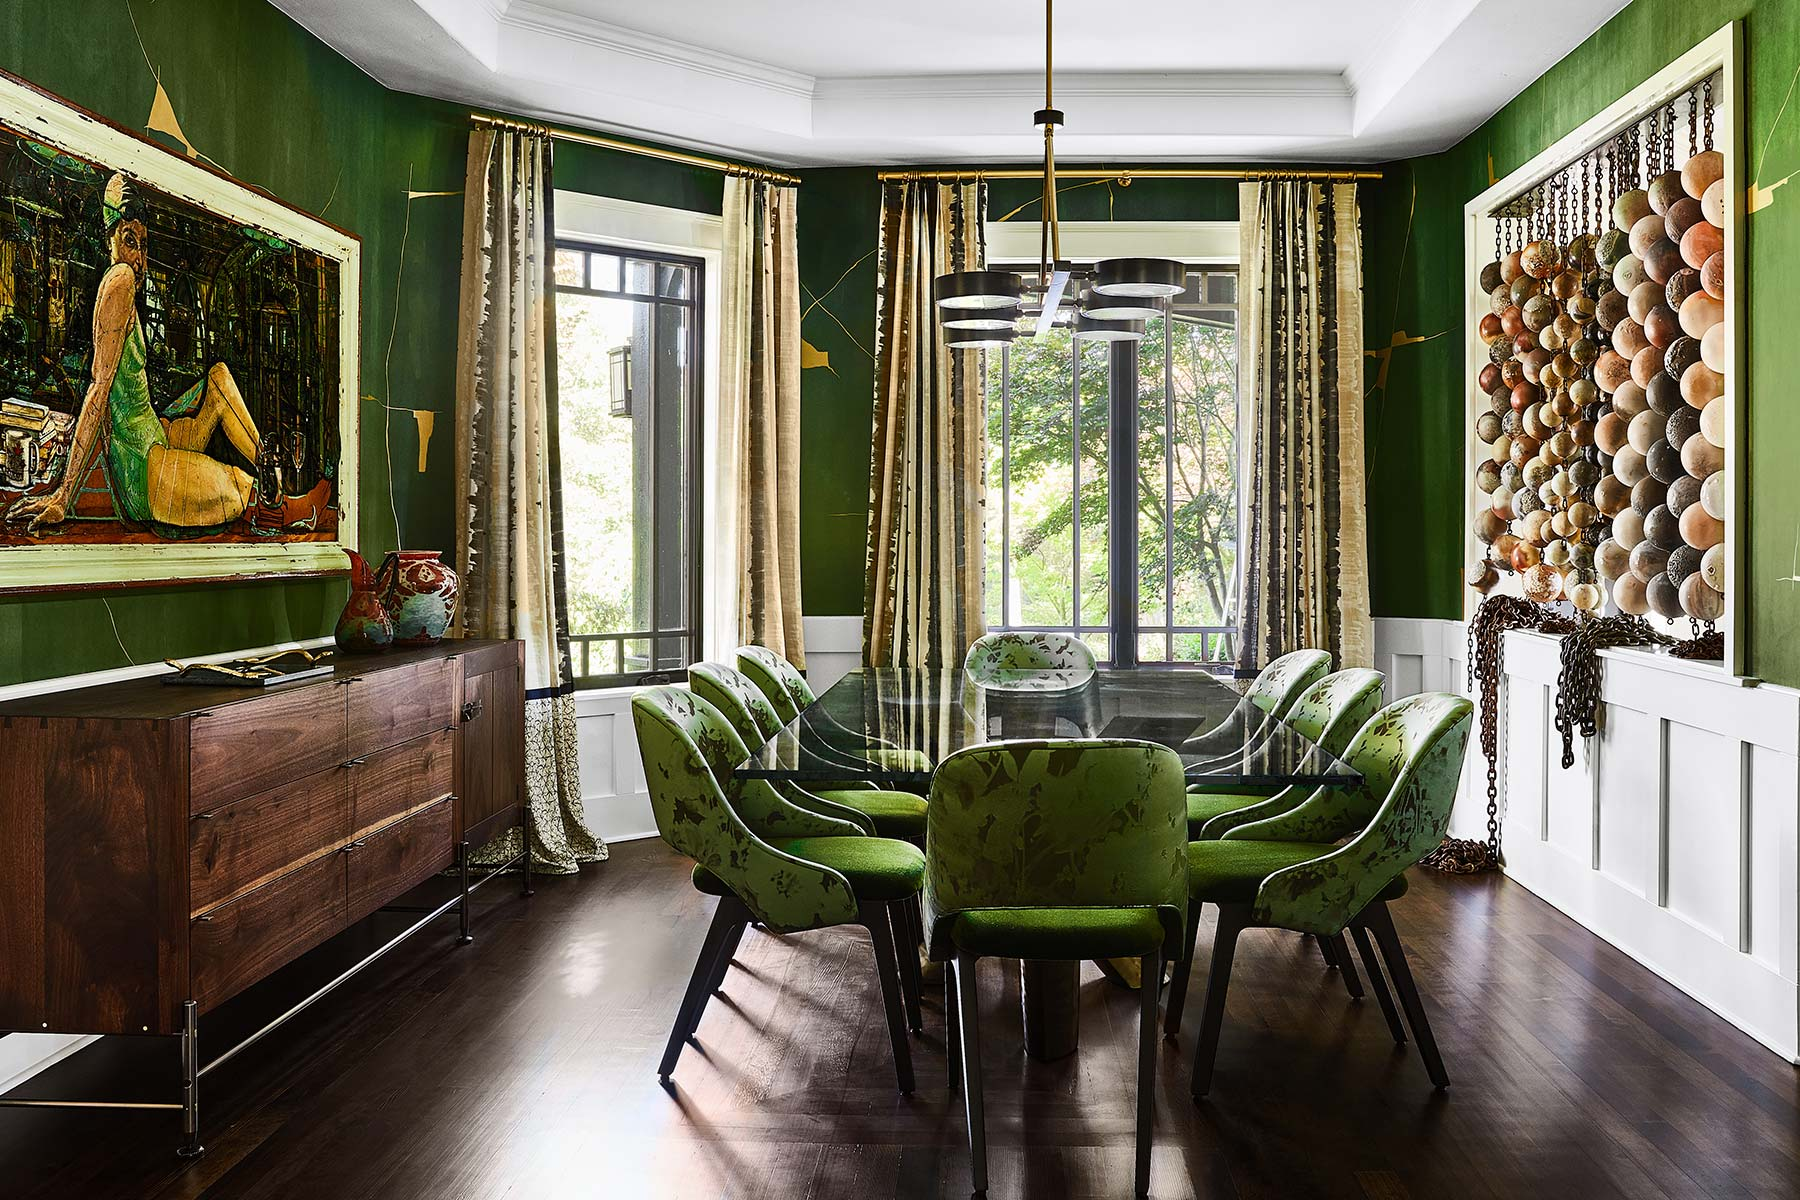 Norton dining room with green chairs